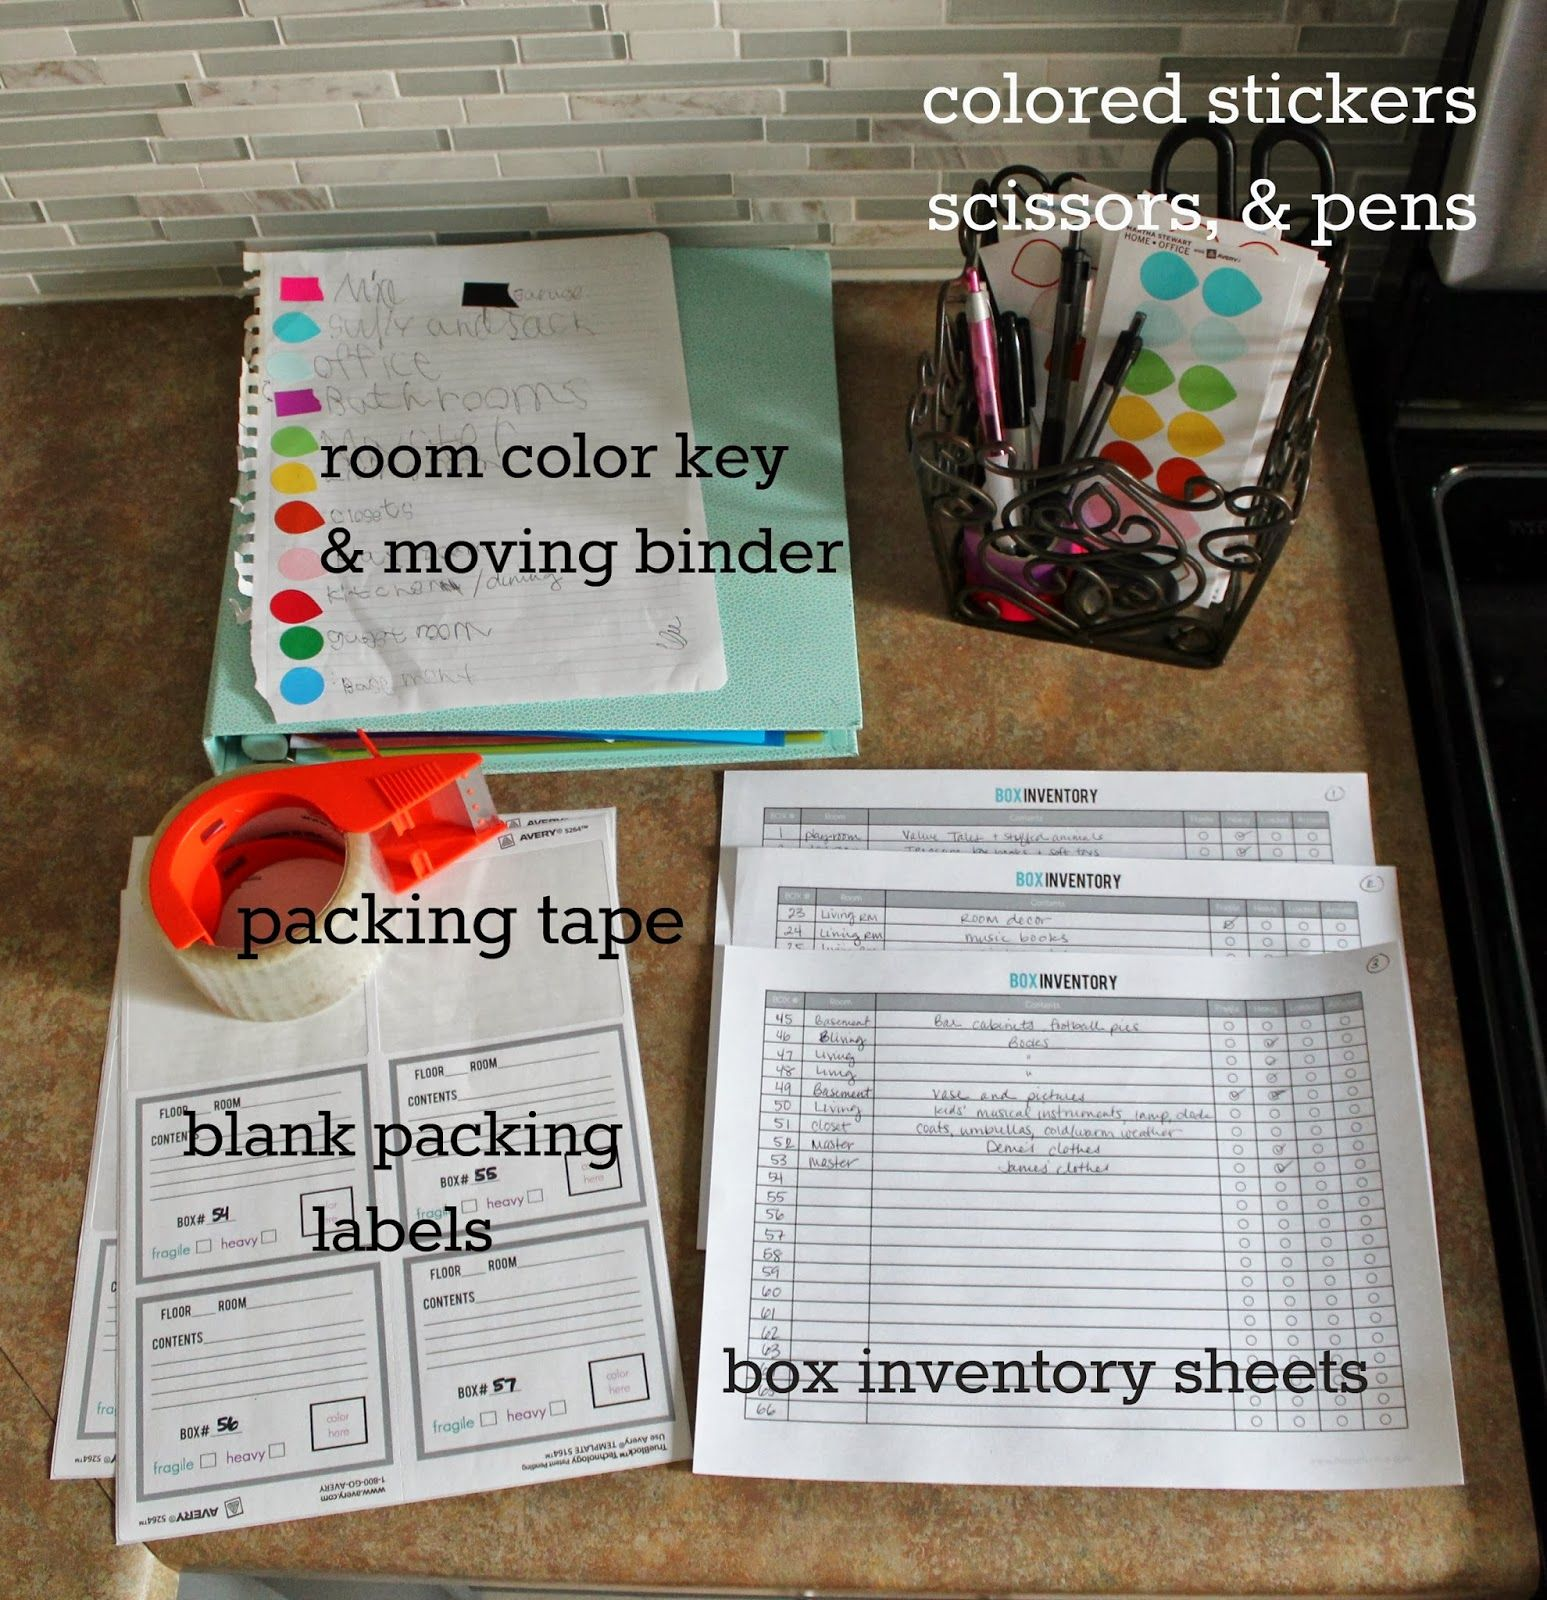 Staying Organized On Moving Day & Free Printable Packing